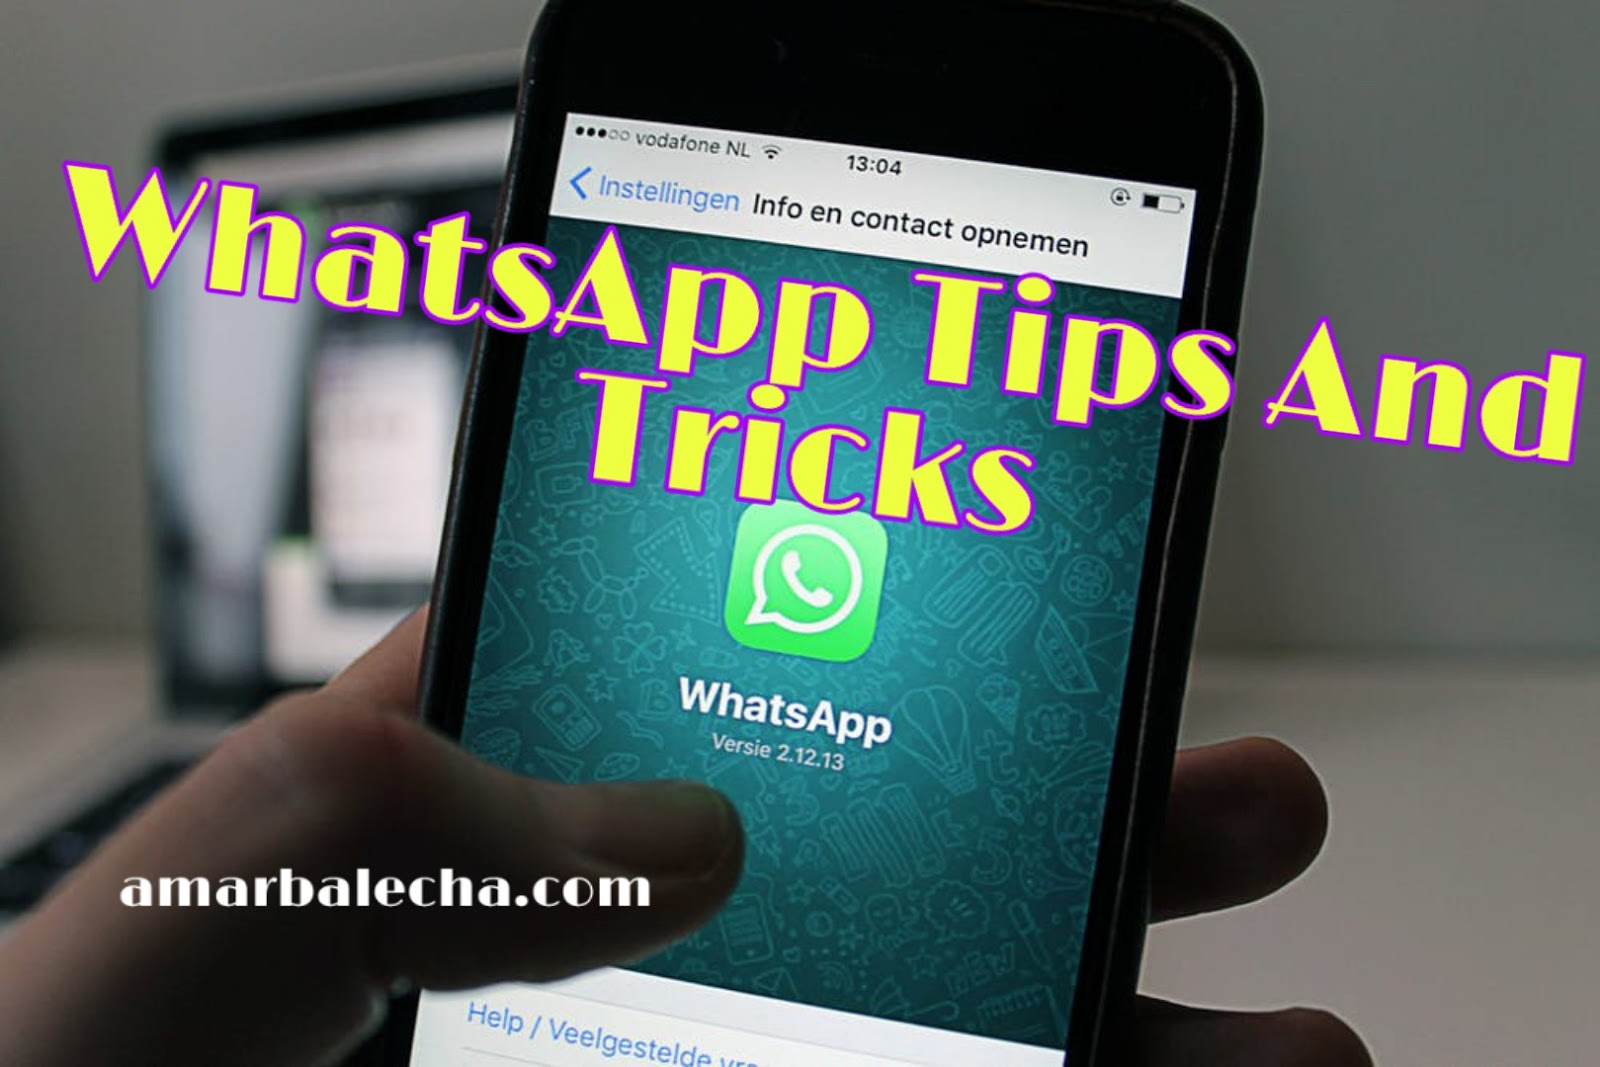 top whatsapp tips and tricks in hindi